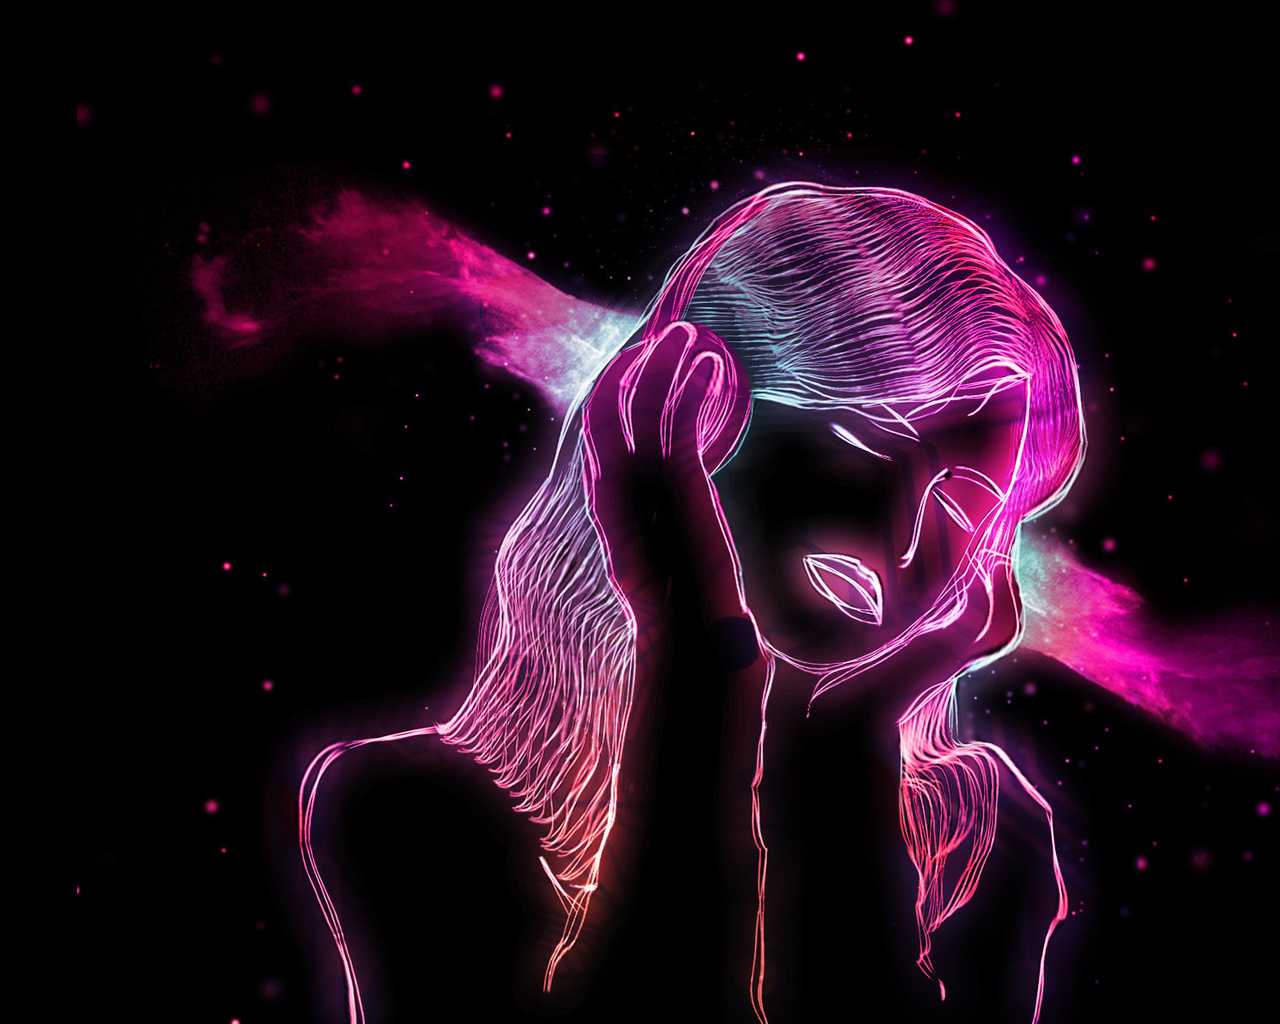 Neon Girl 3d wallpaper on your desktop wallpapers pictures 1280x1024